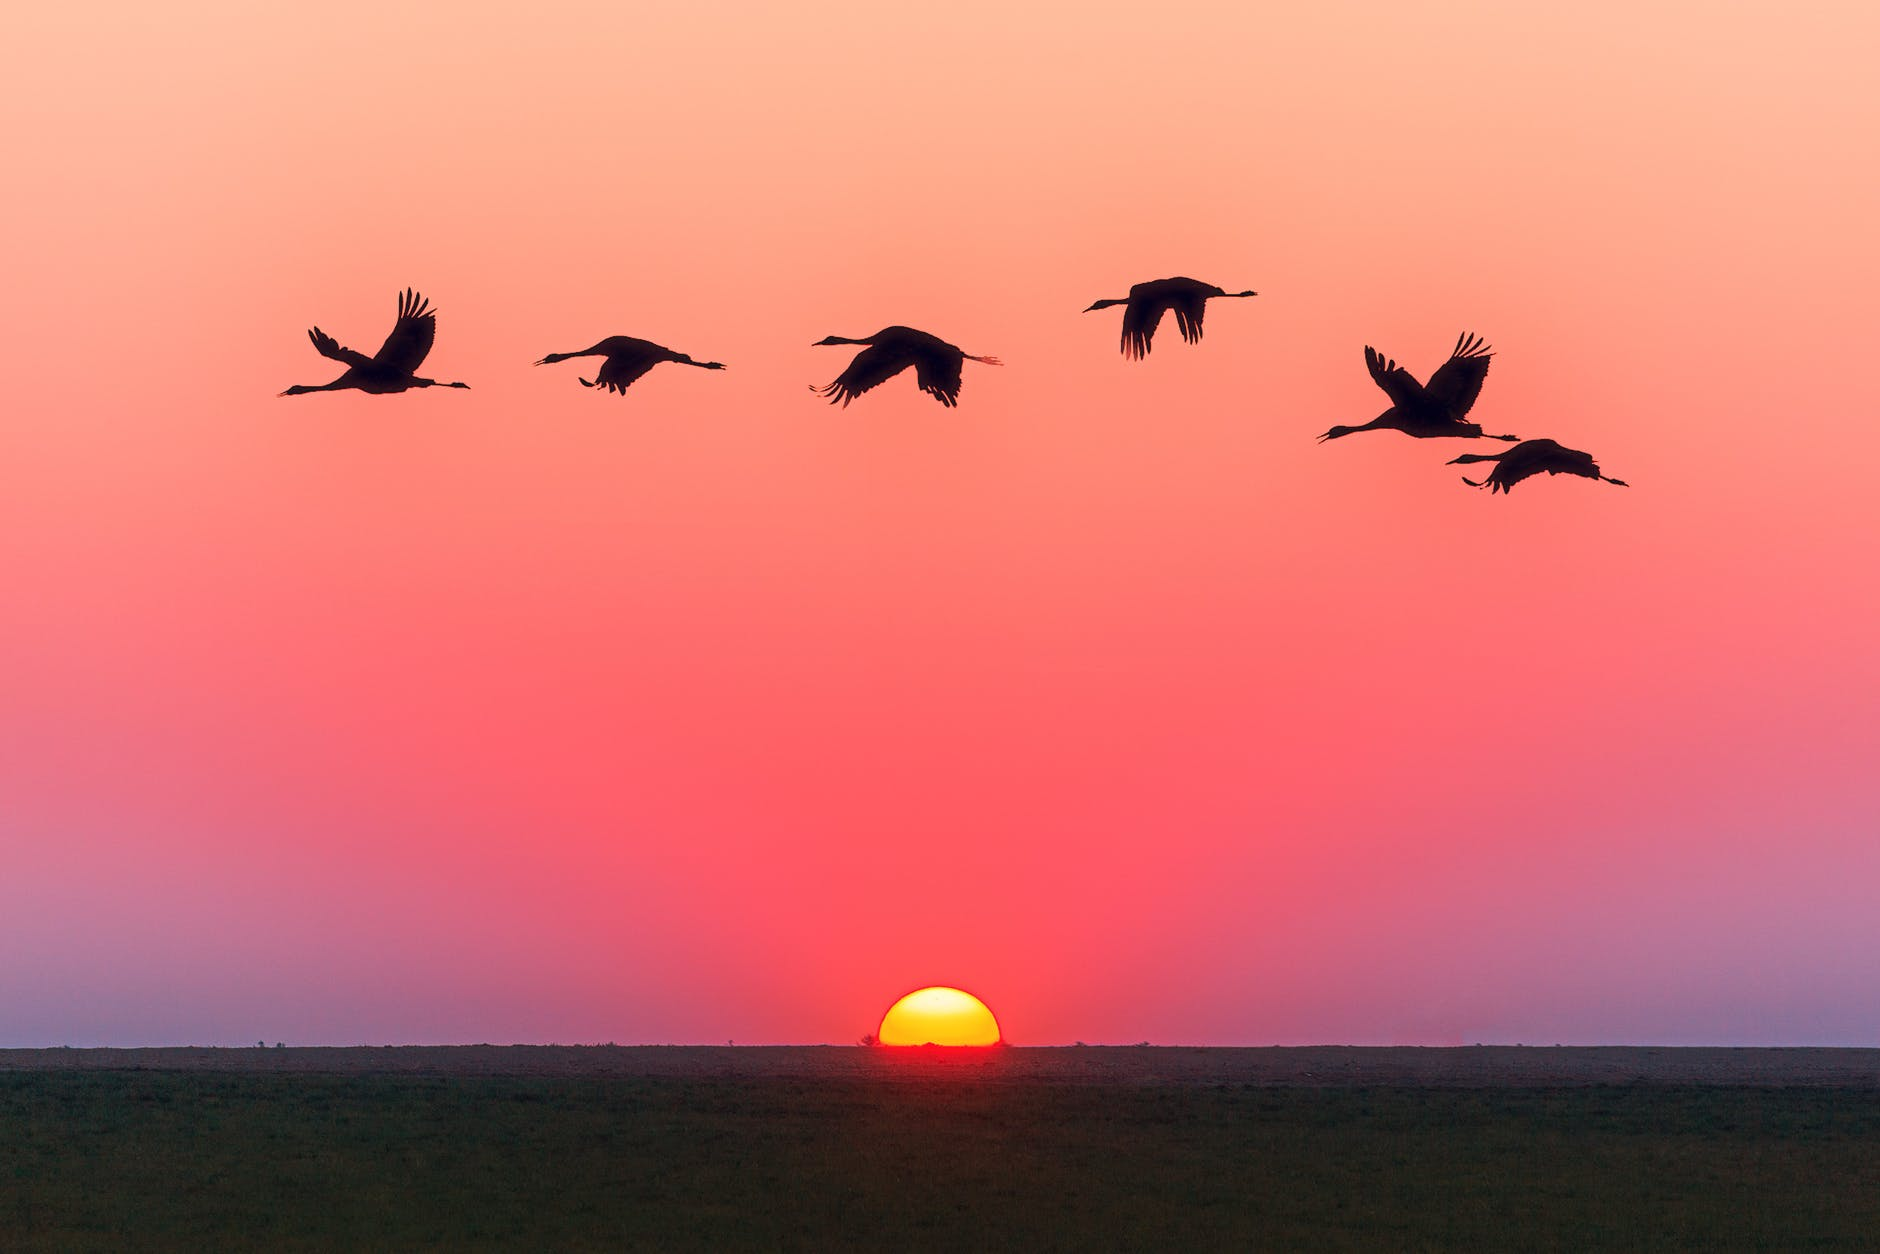 birds flying over body of water during golden hour